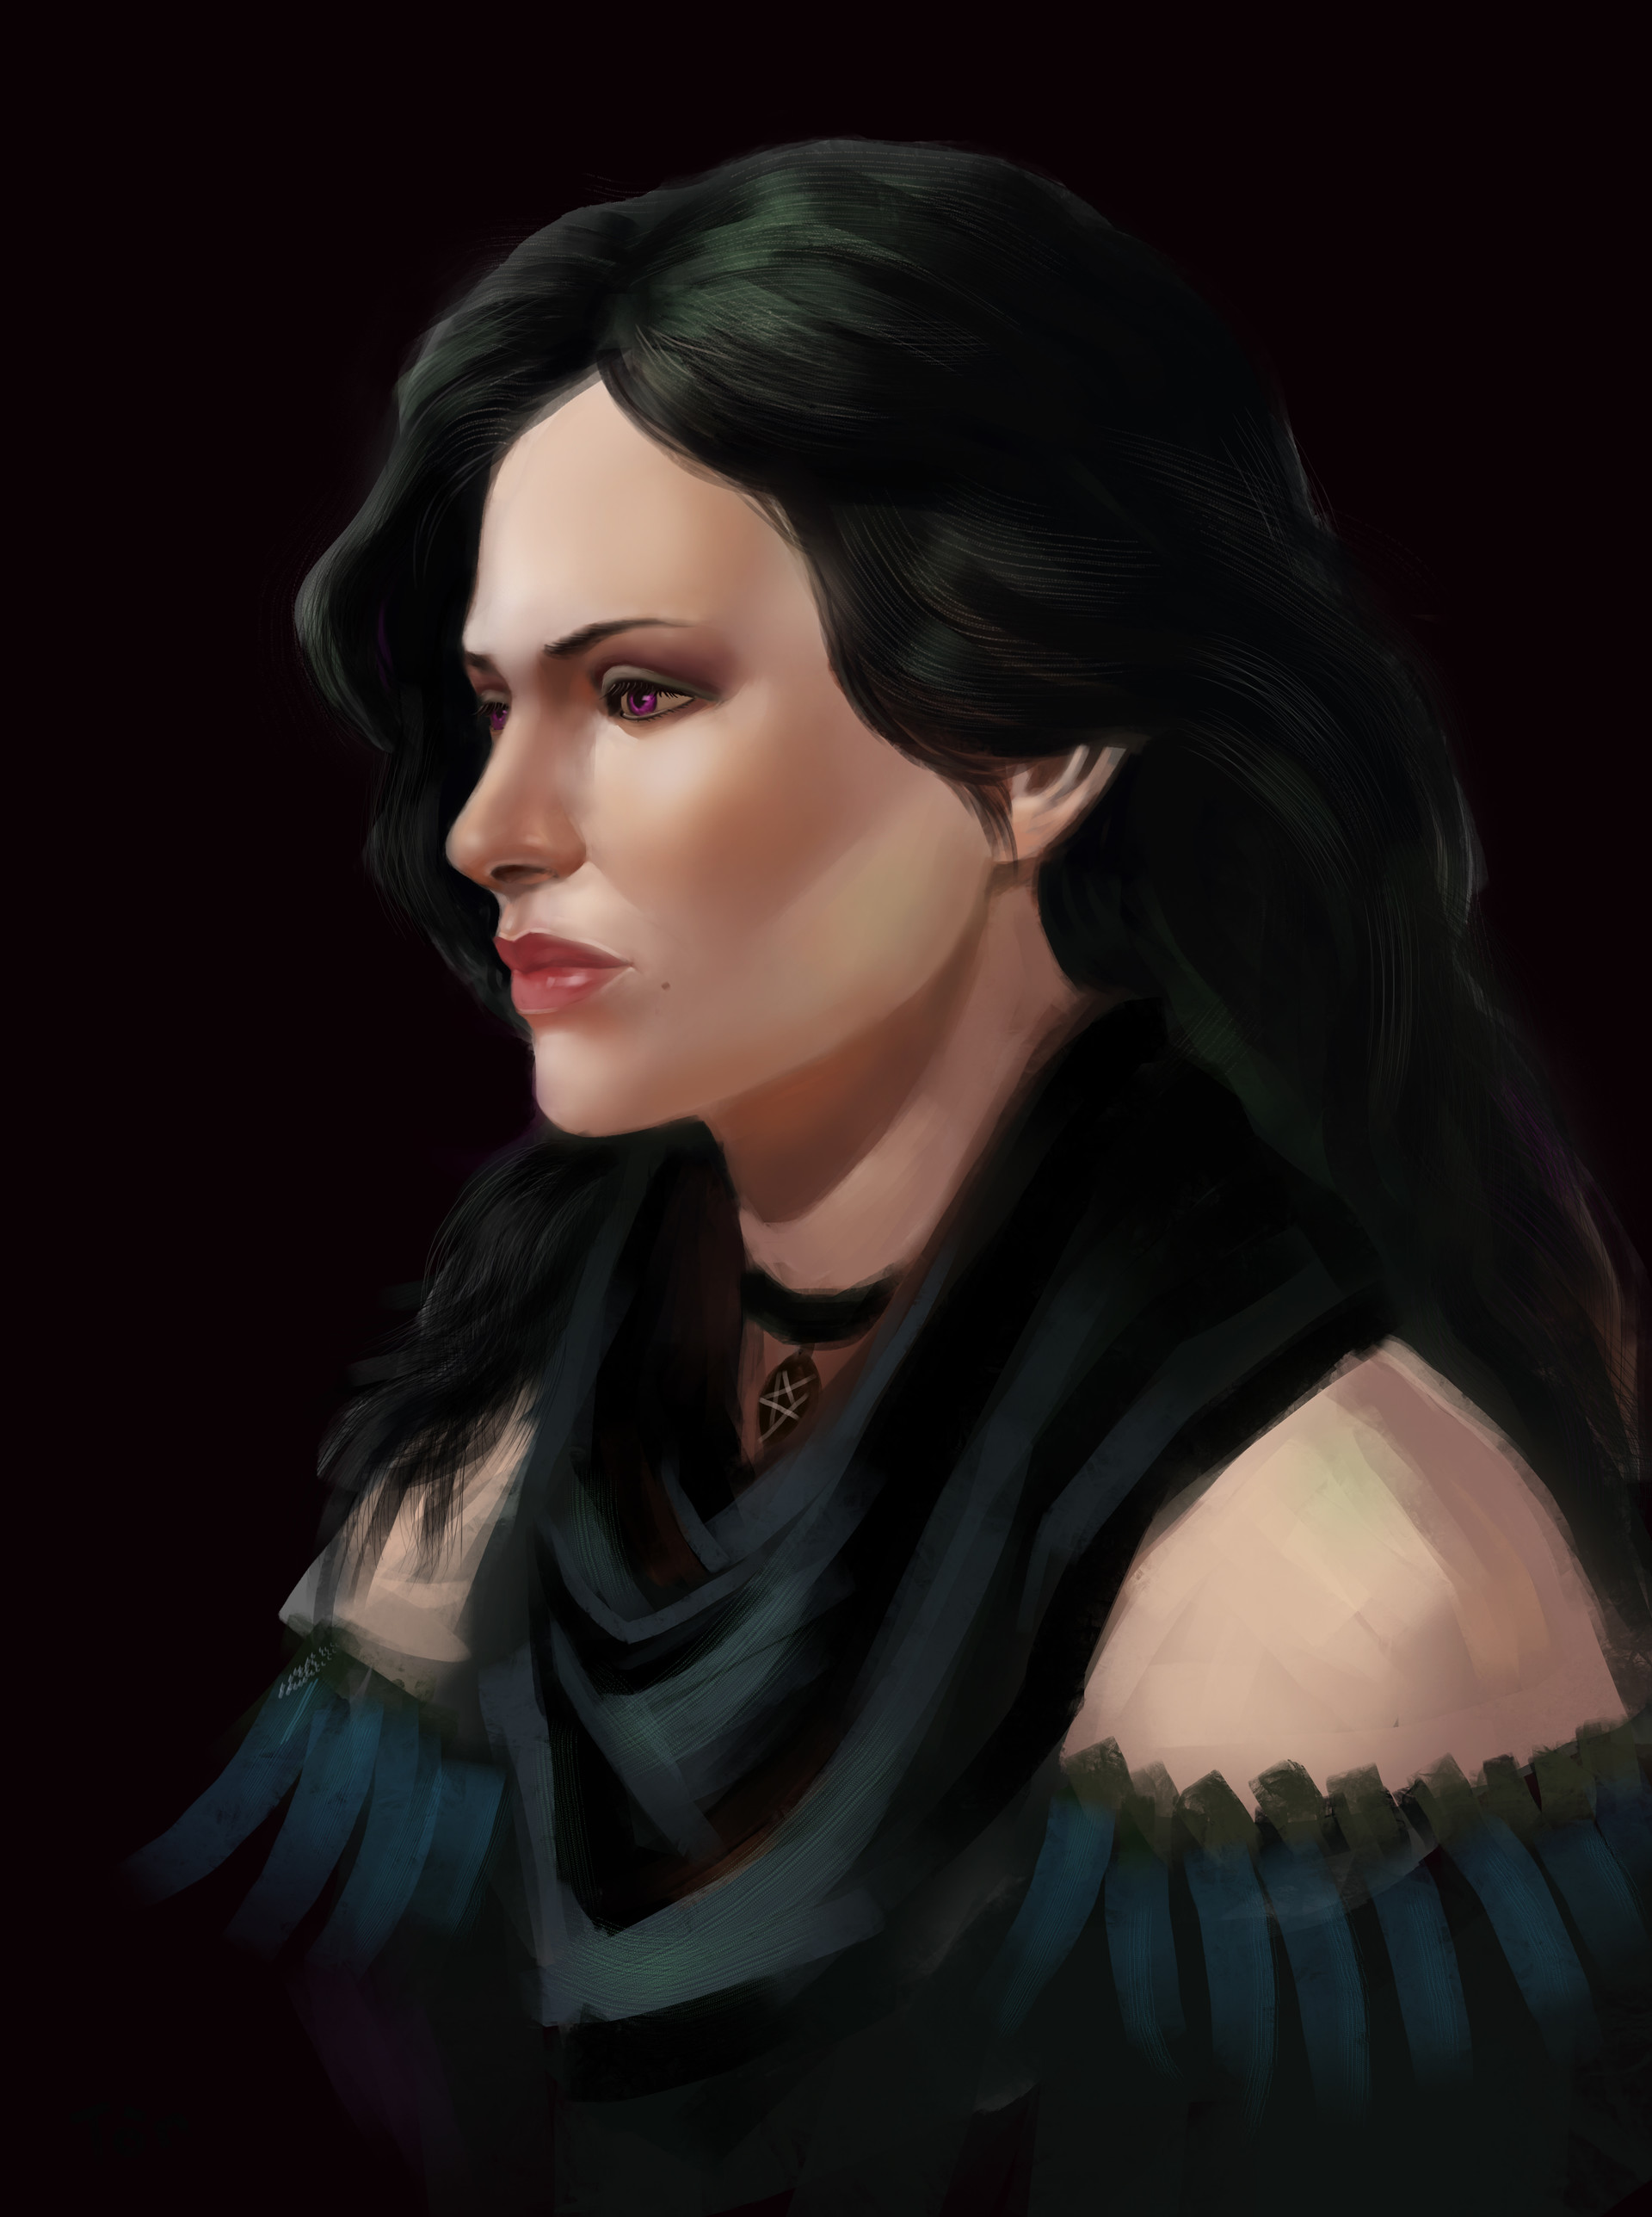 toan-do-viet-yen.jpg - Witcher 3: Wild Hunt, the Yennefer, Yennefer z Vengerbergu, Йеннифэр